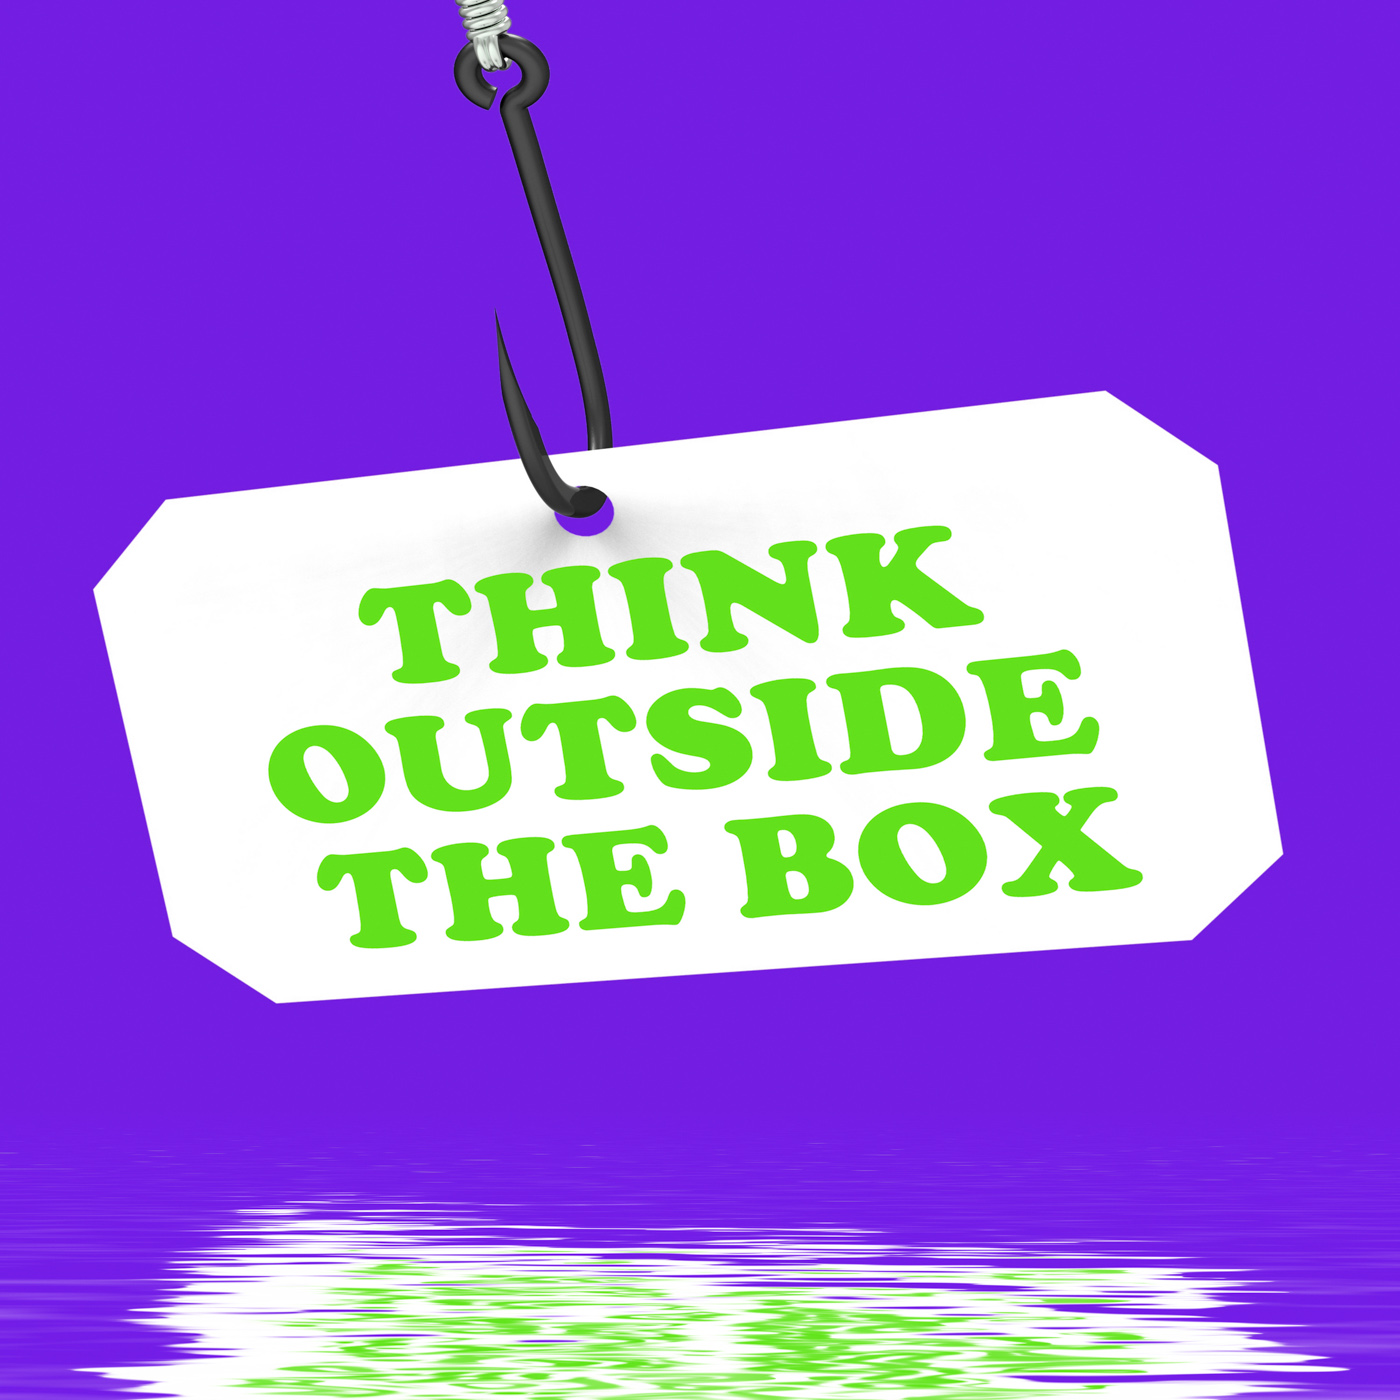 Think Outside The Box On Hook Displays Imagination And Creativity, Box, Innovation, Unconventional, ThinkOutsideTheB, HQ Photo